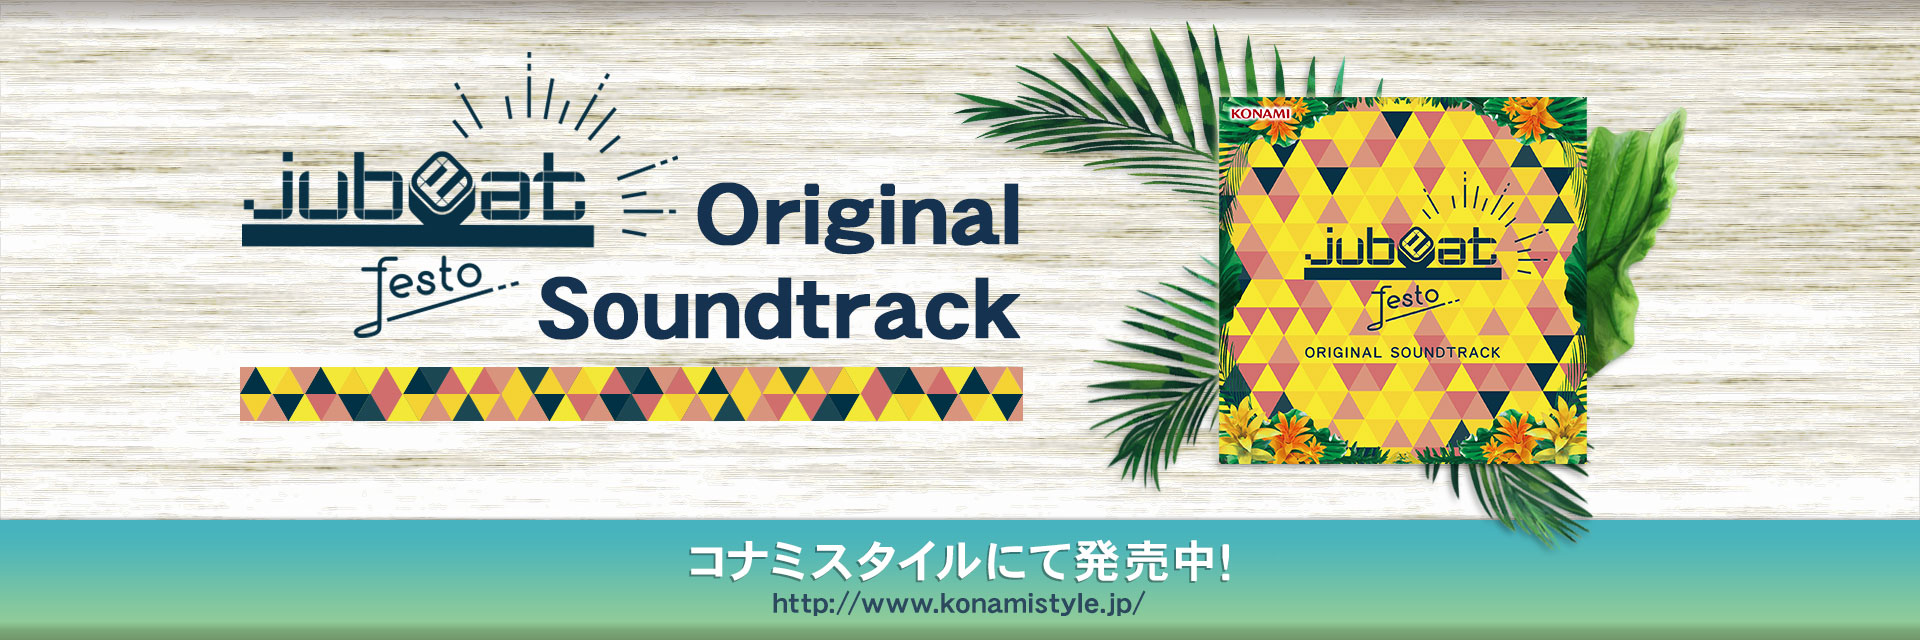 jubeat festo ORIGINAL SOUNDTRACK 予約受付中!